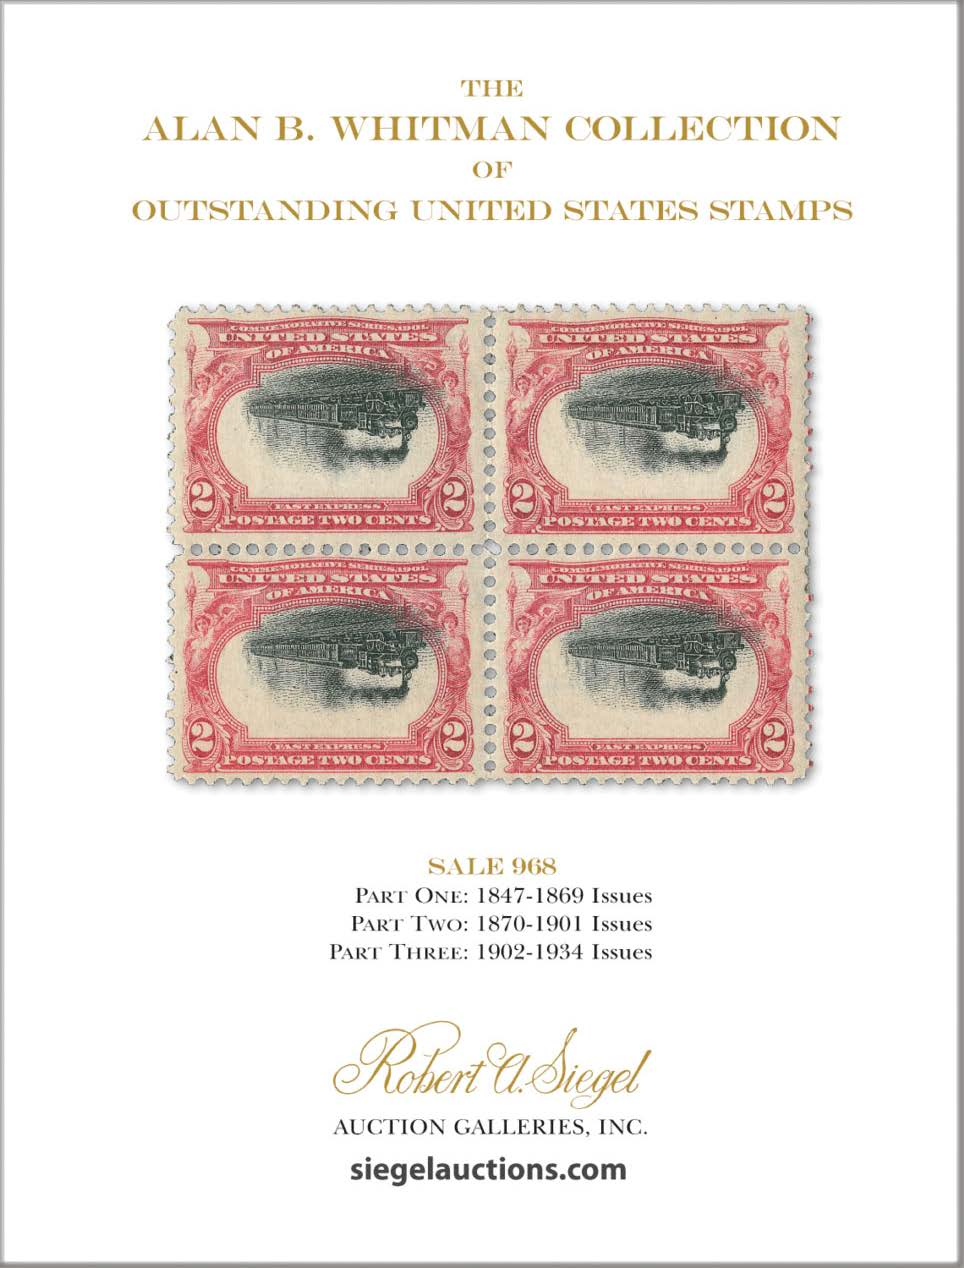 The Alan B. Whitman Collection of Outstanding United States Stamps — Siegel Auction Galleries